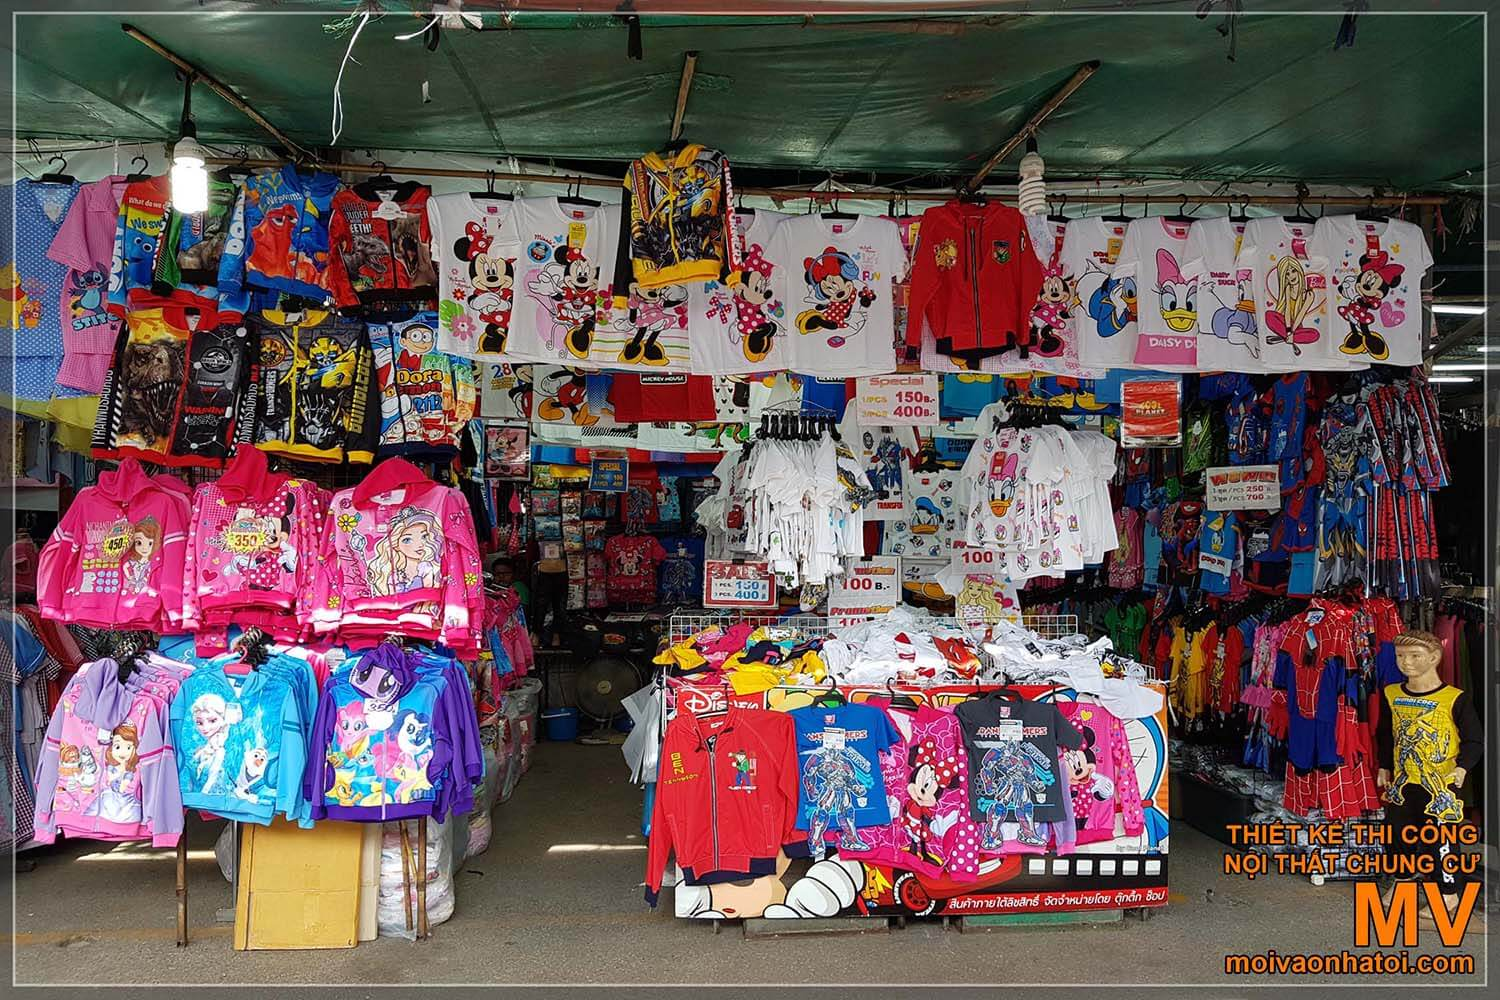 Inside the Thai market Chatuchak with a variety of goods